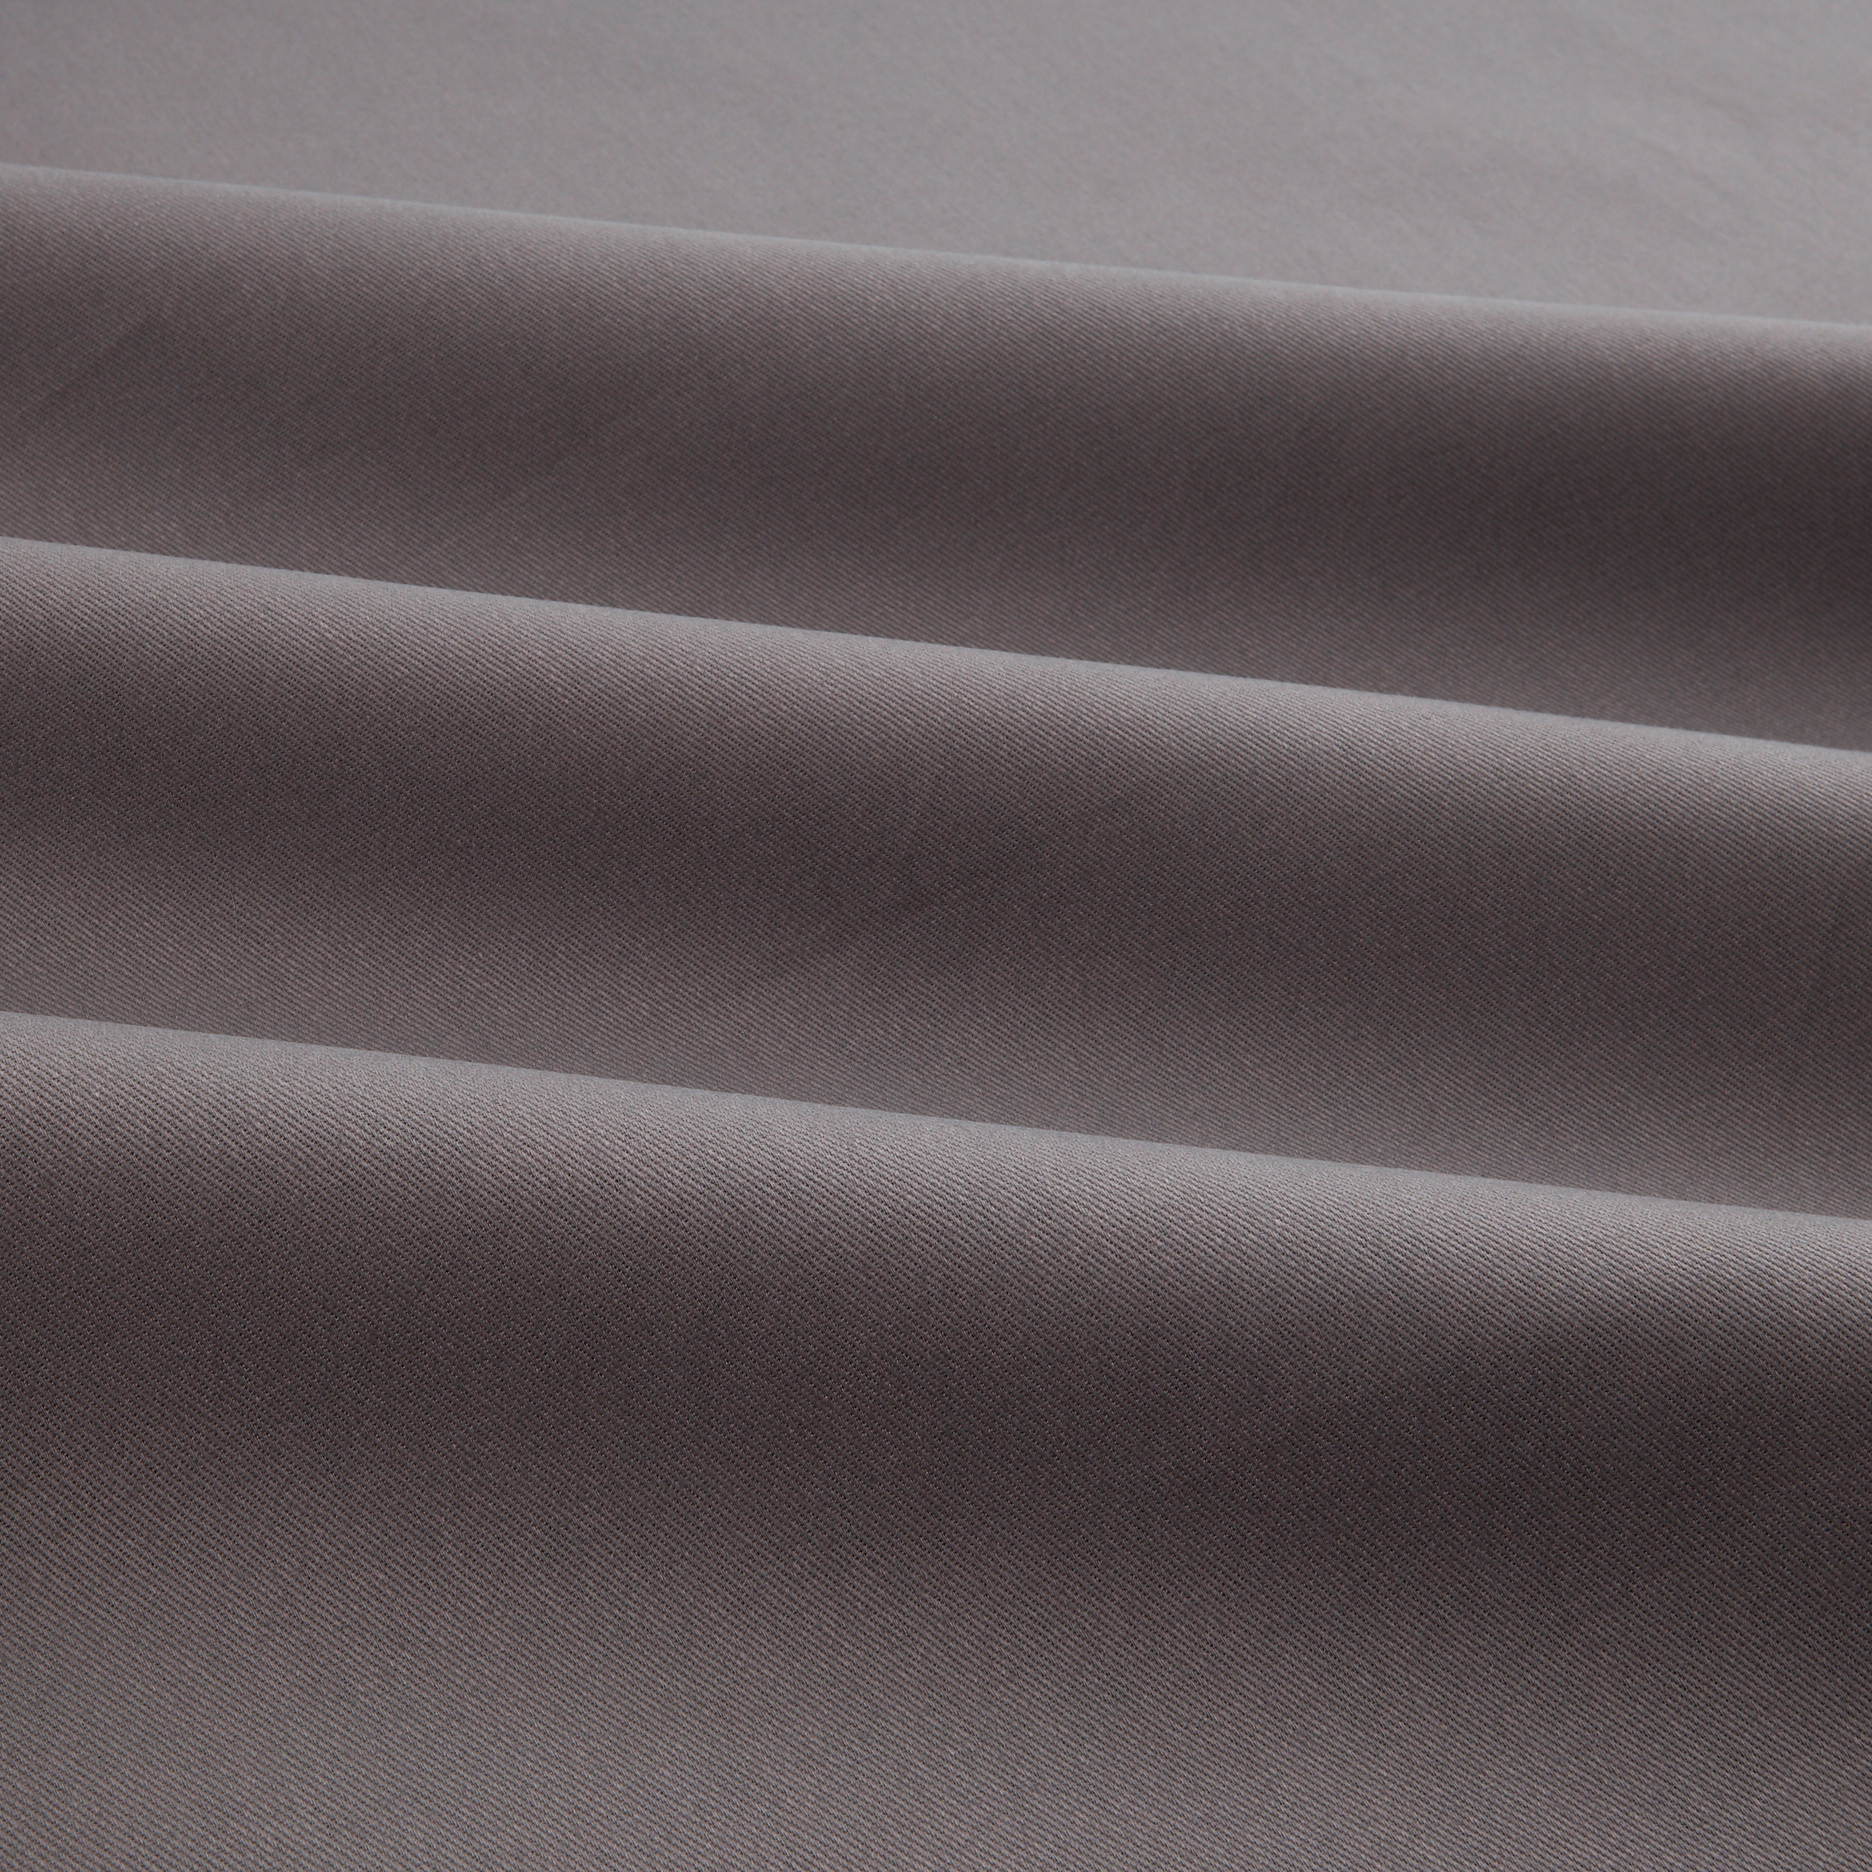 Polyester/Cotton Twill Griffin Grey Fabric by Textile Creations in USA